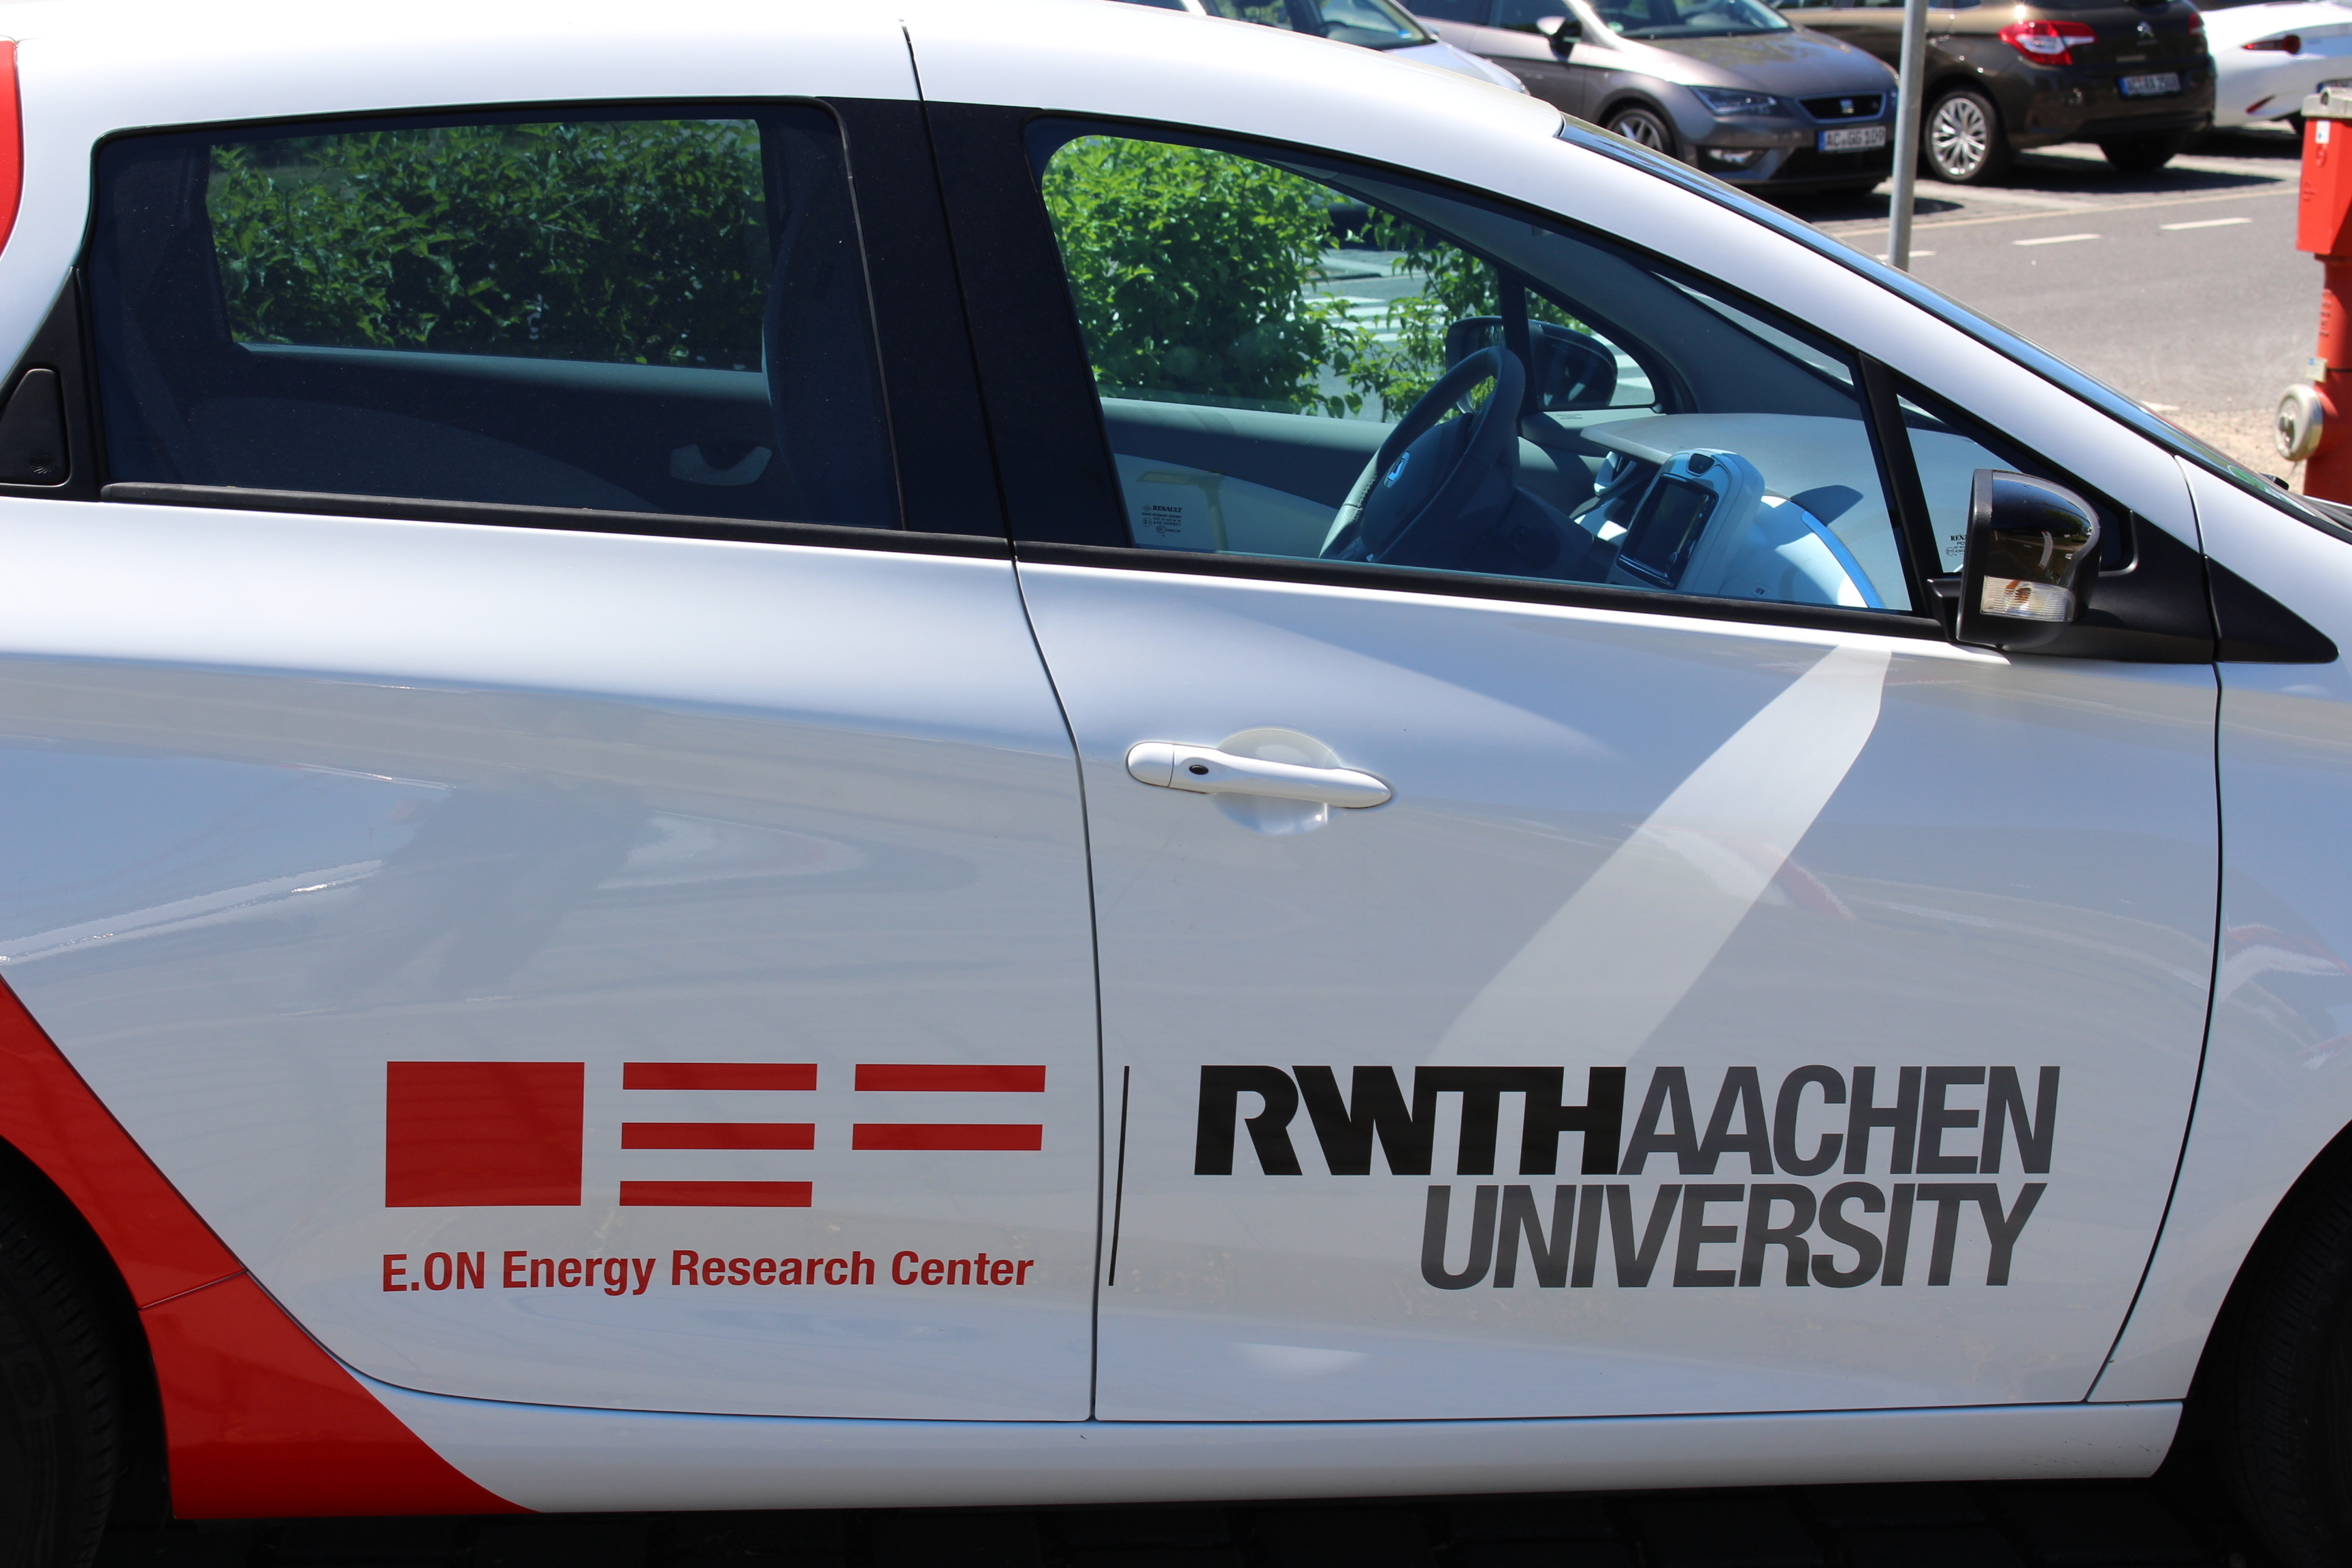 E.ON ERC E-Car